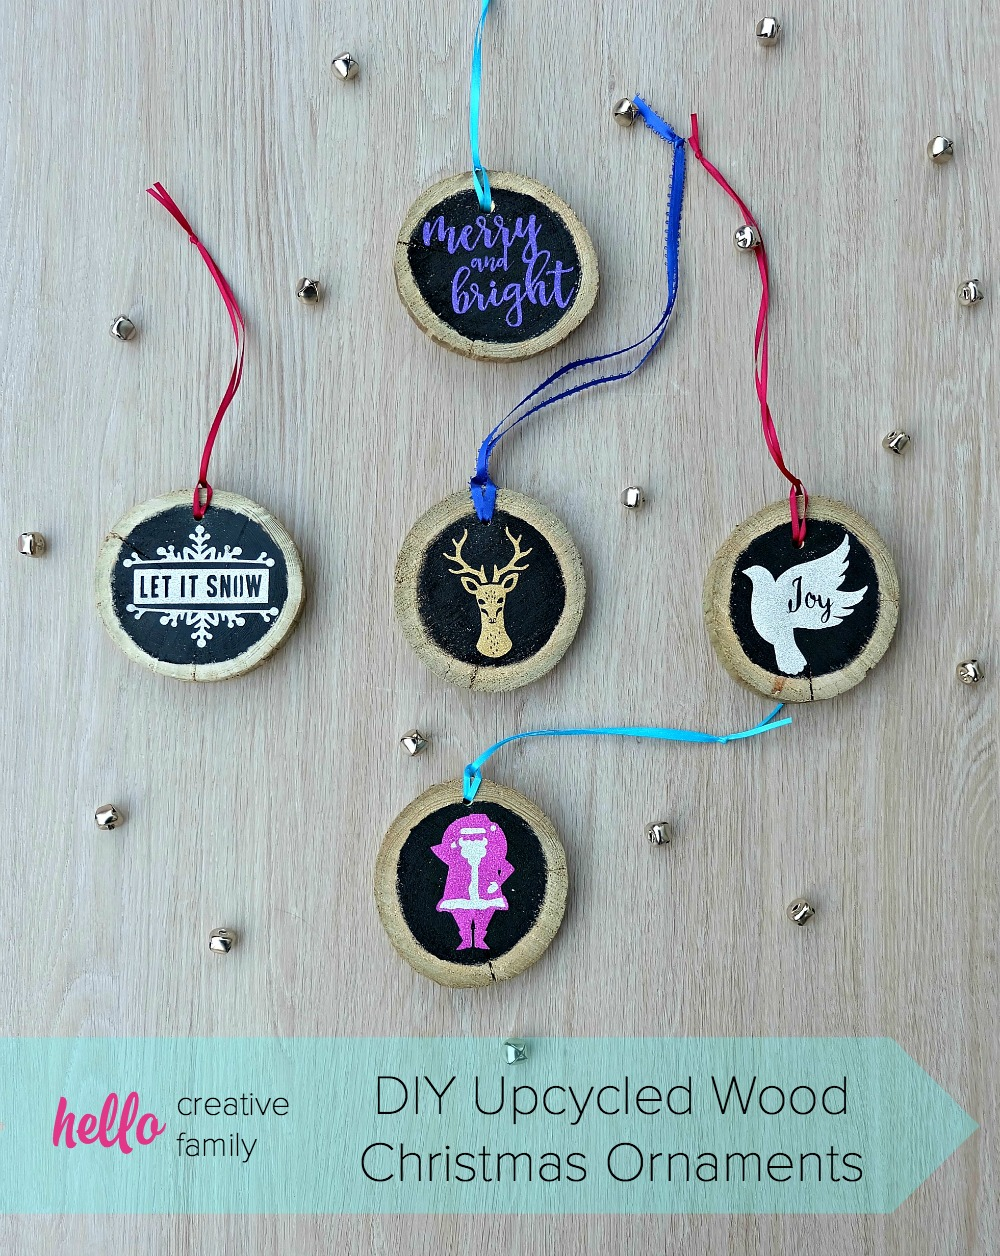 Diy Upcycled Wood Christmas Ornaments Hello Creative Family